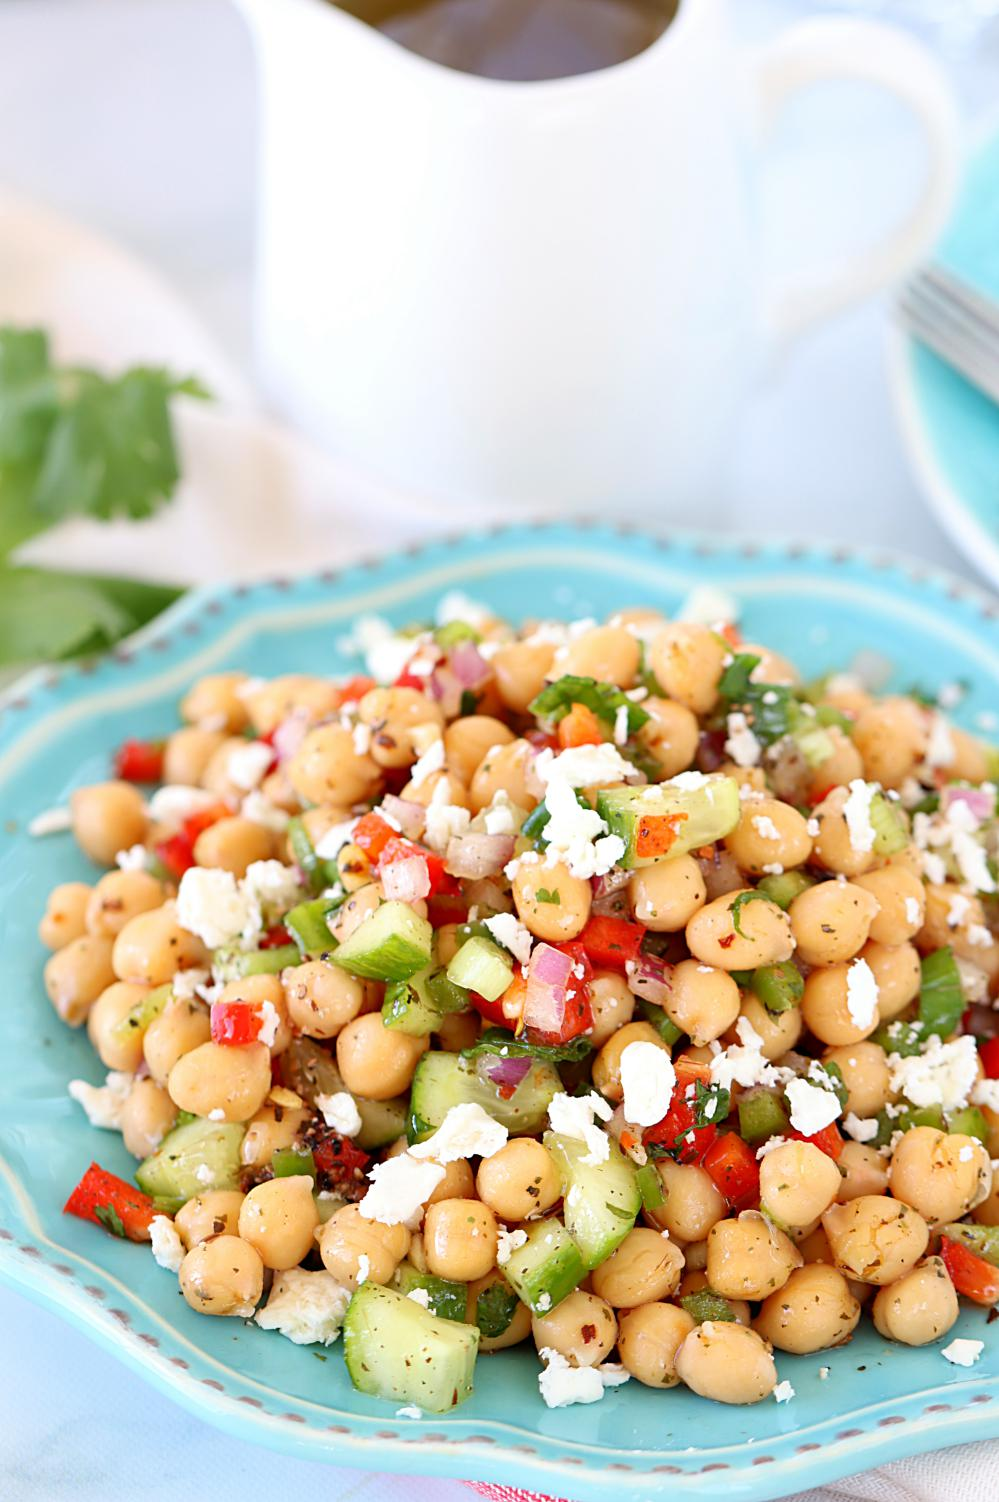 Vegan Chickpea Salad. Here are 25 delicious vegan salads that will fill you up and have a healthy source of protein. Show your friends that not 'all vegans eat is rabbit food' with these unique and delicious twists on salads #vegan